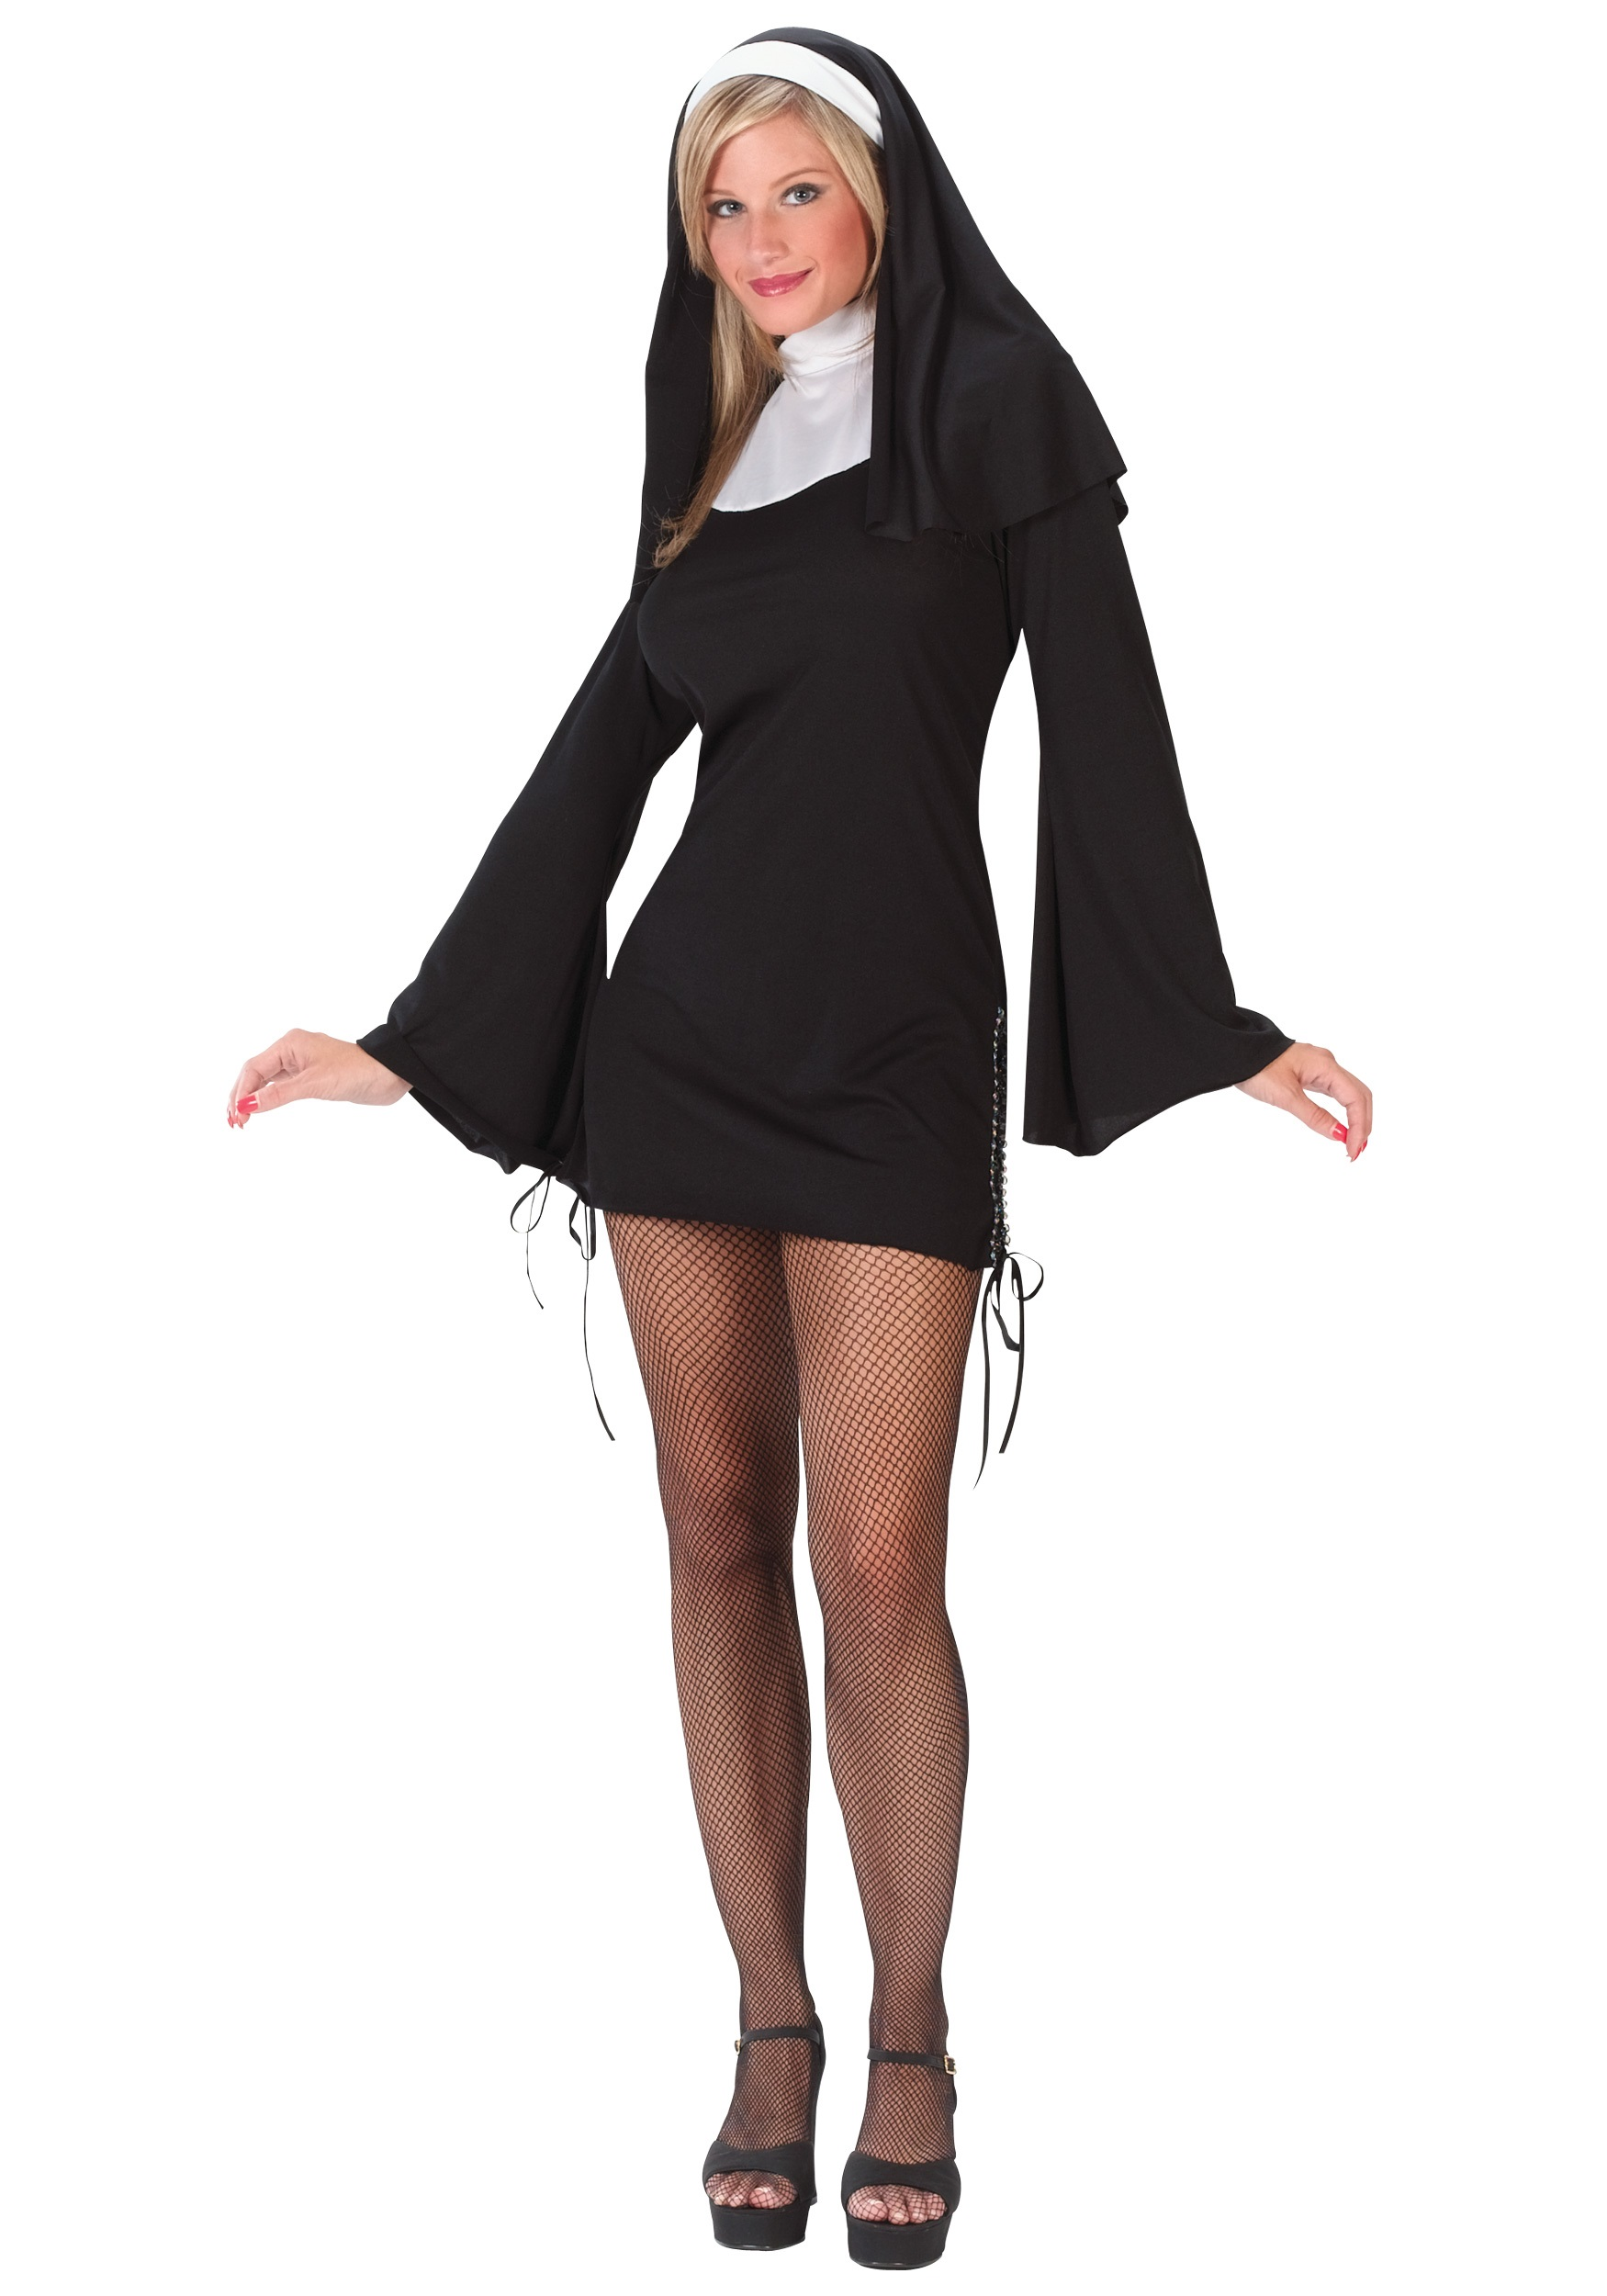 naughty nun costume - Naughty Girl Halloween Costumes